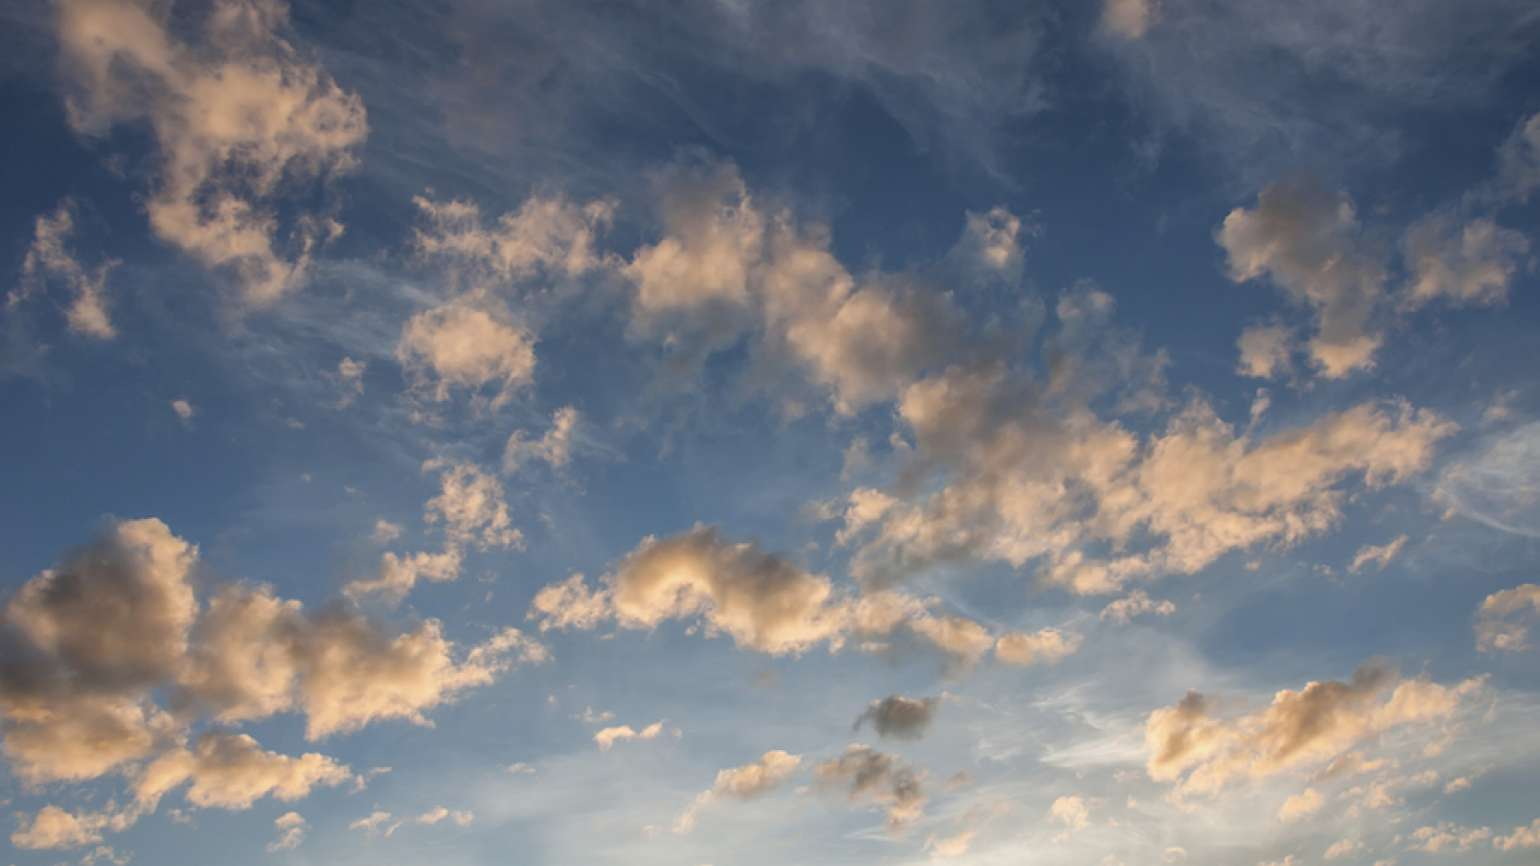 Clouds at sunset. Photo: Thinkstock.